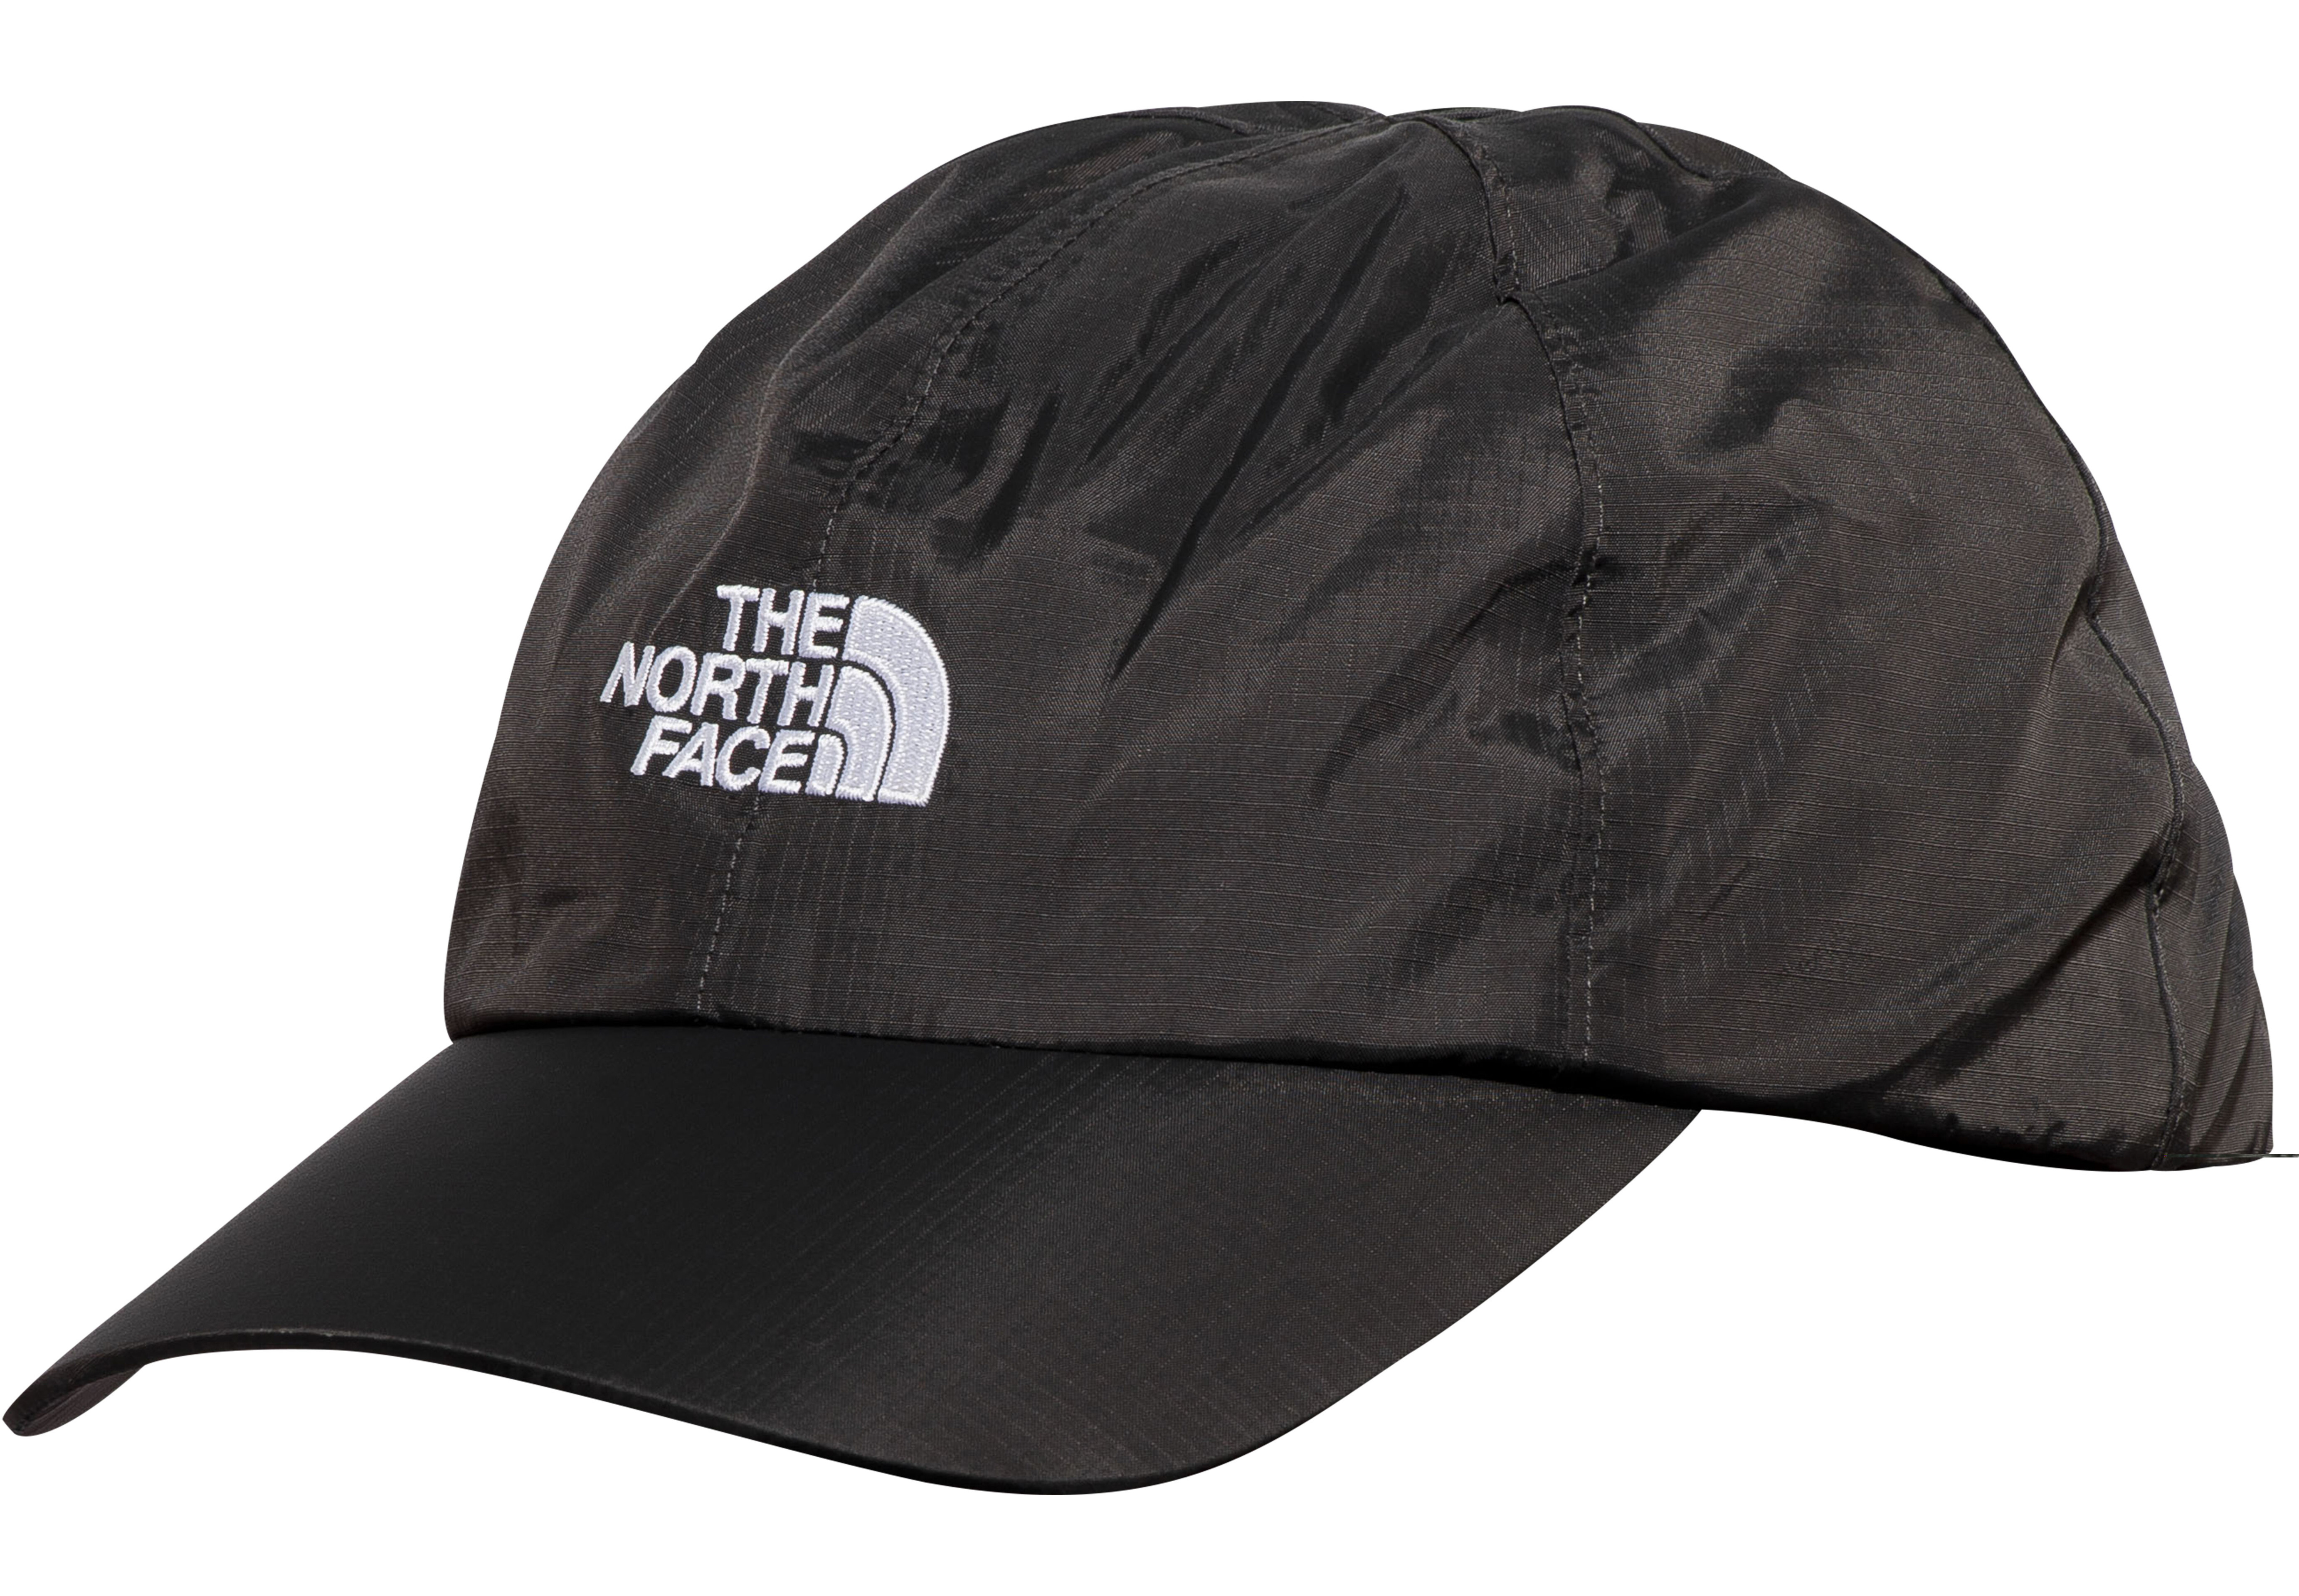 b5a897242d9 The North Face DryVent Headwear grey at Addnature.co.uk